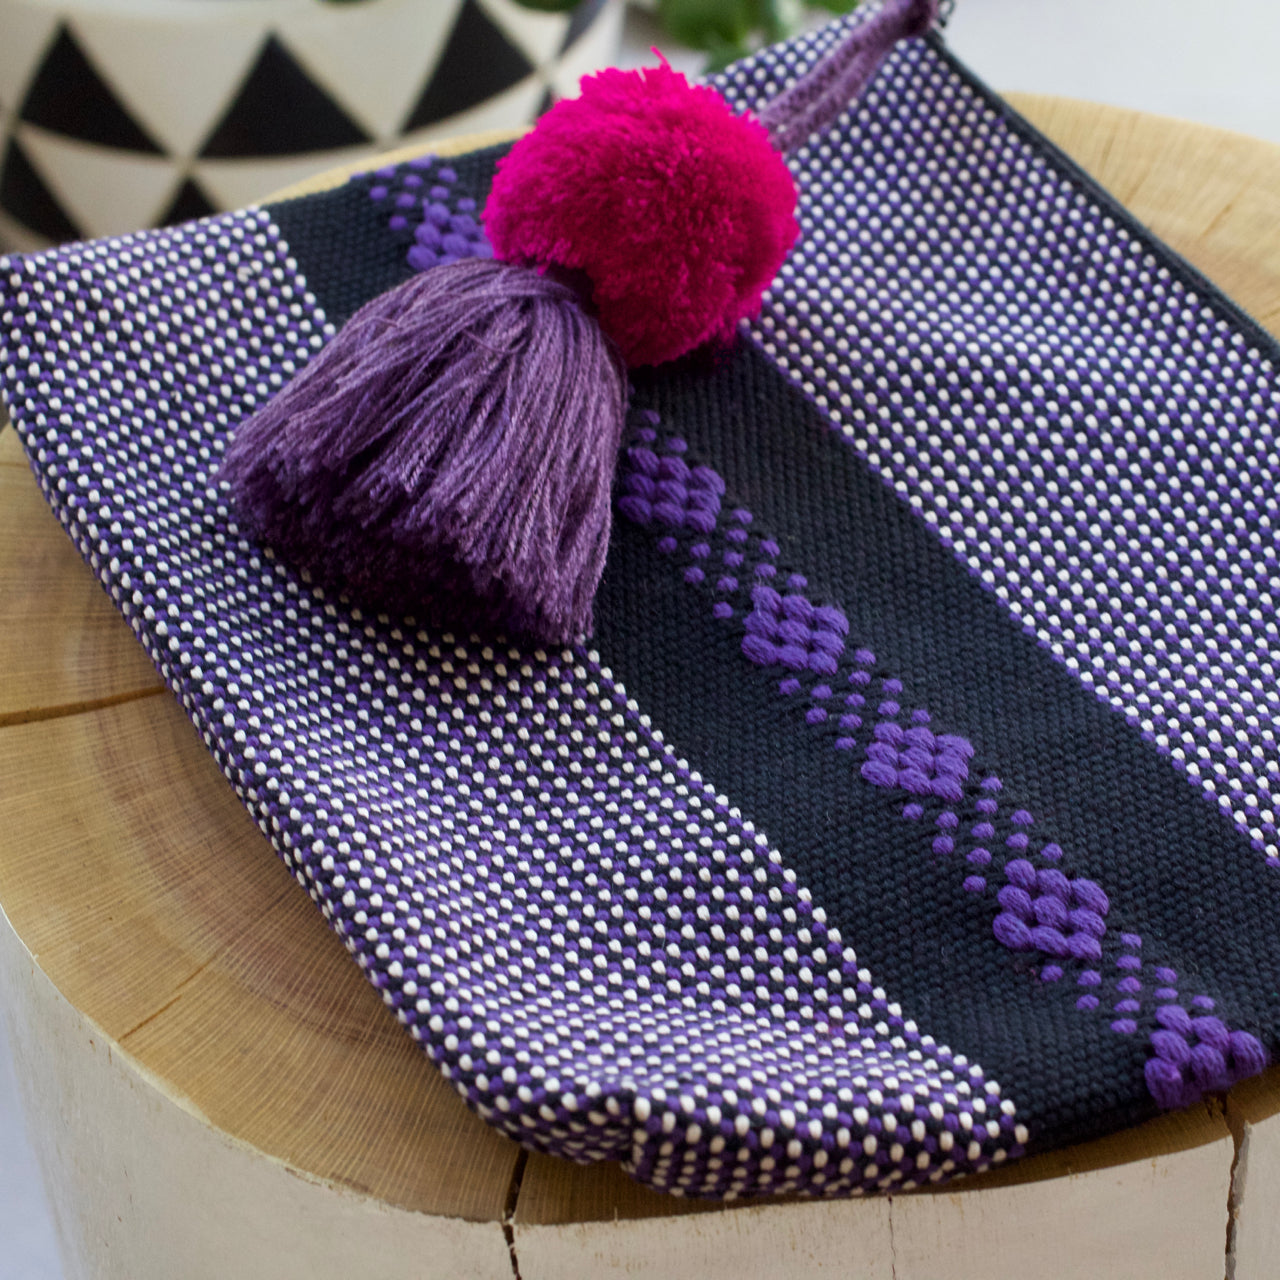 Jalieza Striped Clutch 13  Clutch Black & Purple - Cielo Collective handmade Mexico Guatemala